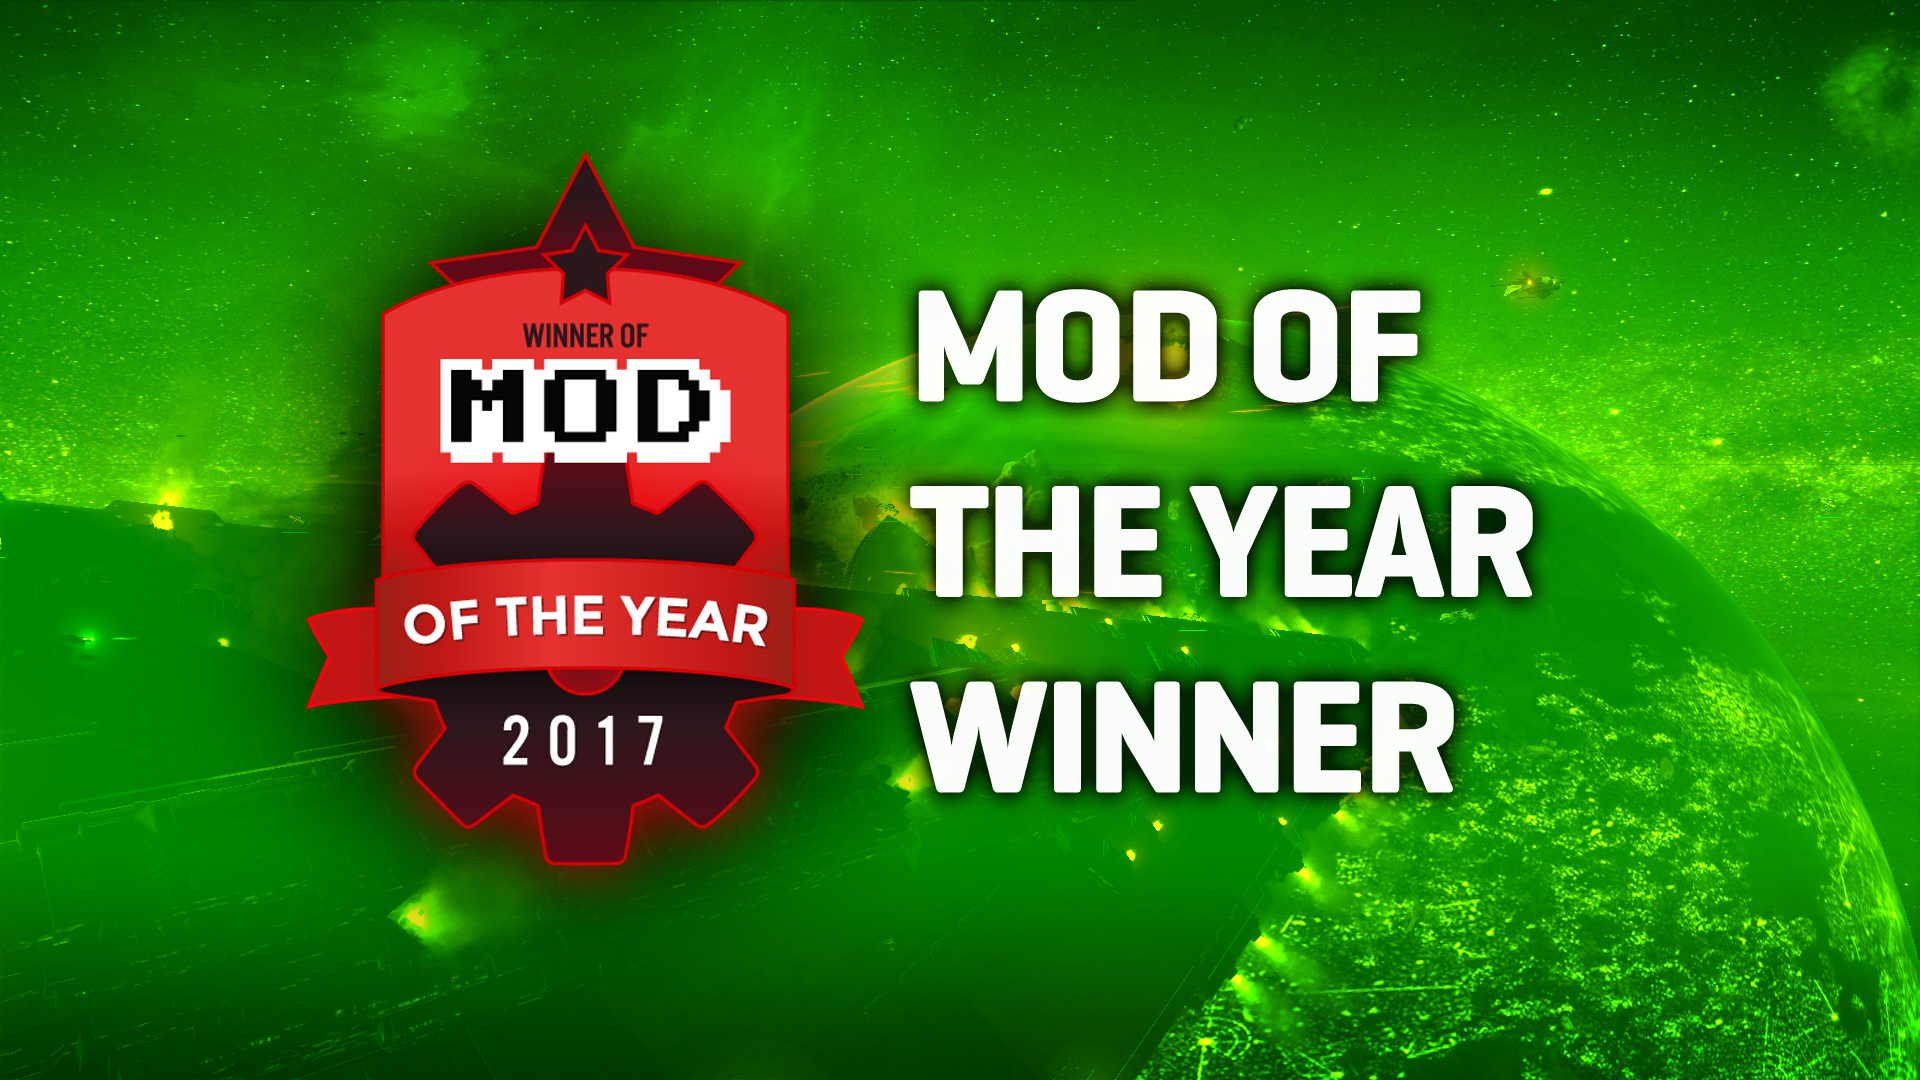 moty mod of the year